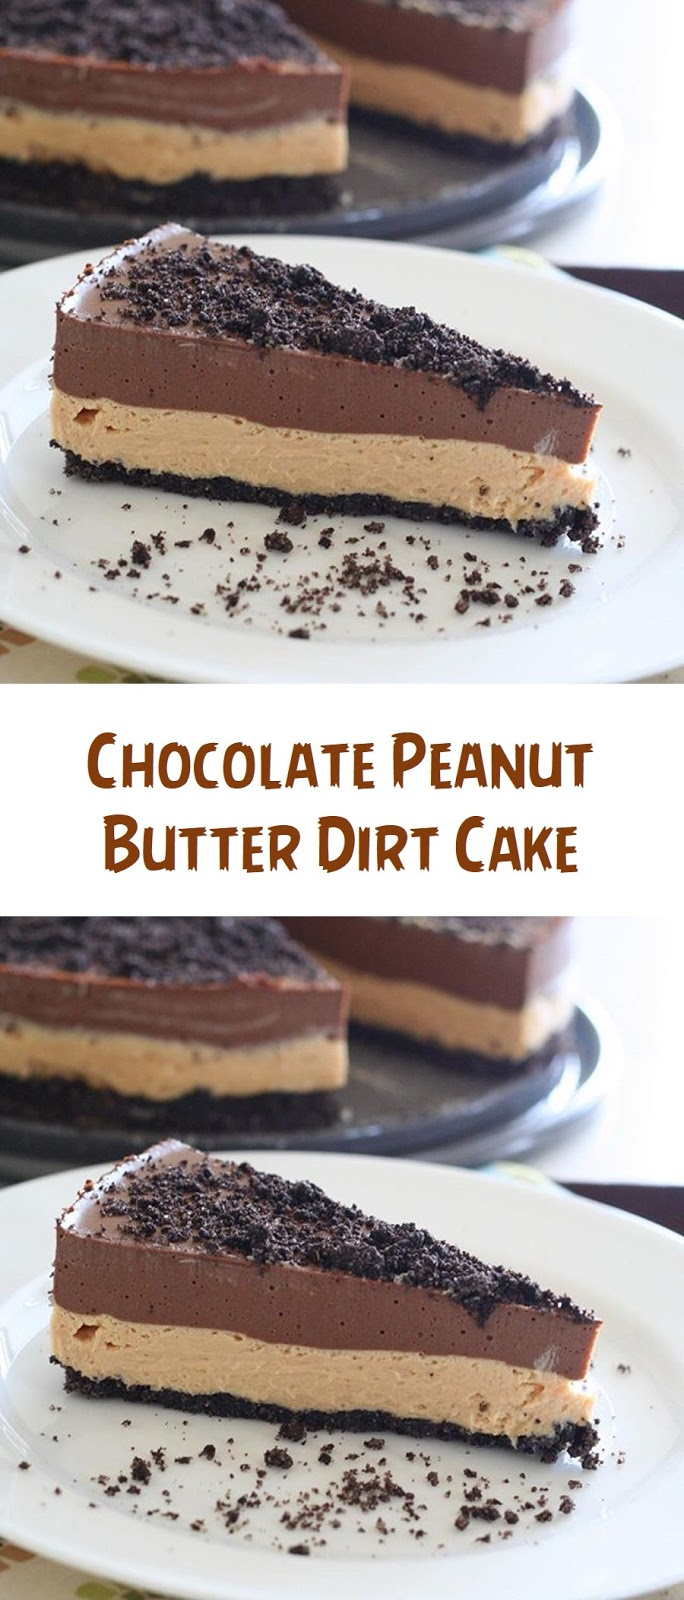 Chocolate Peanut Butter Dirt Cake